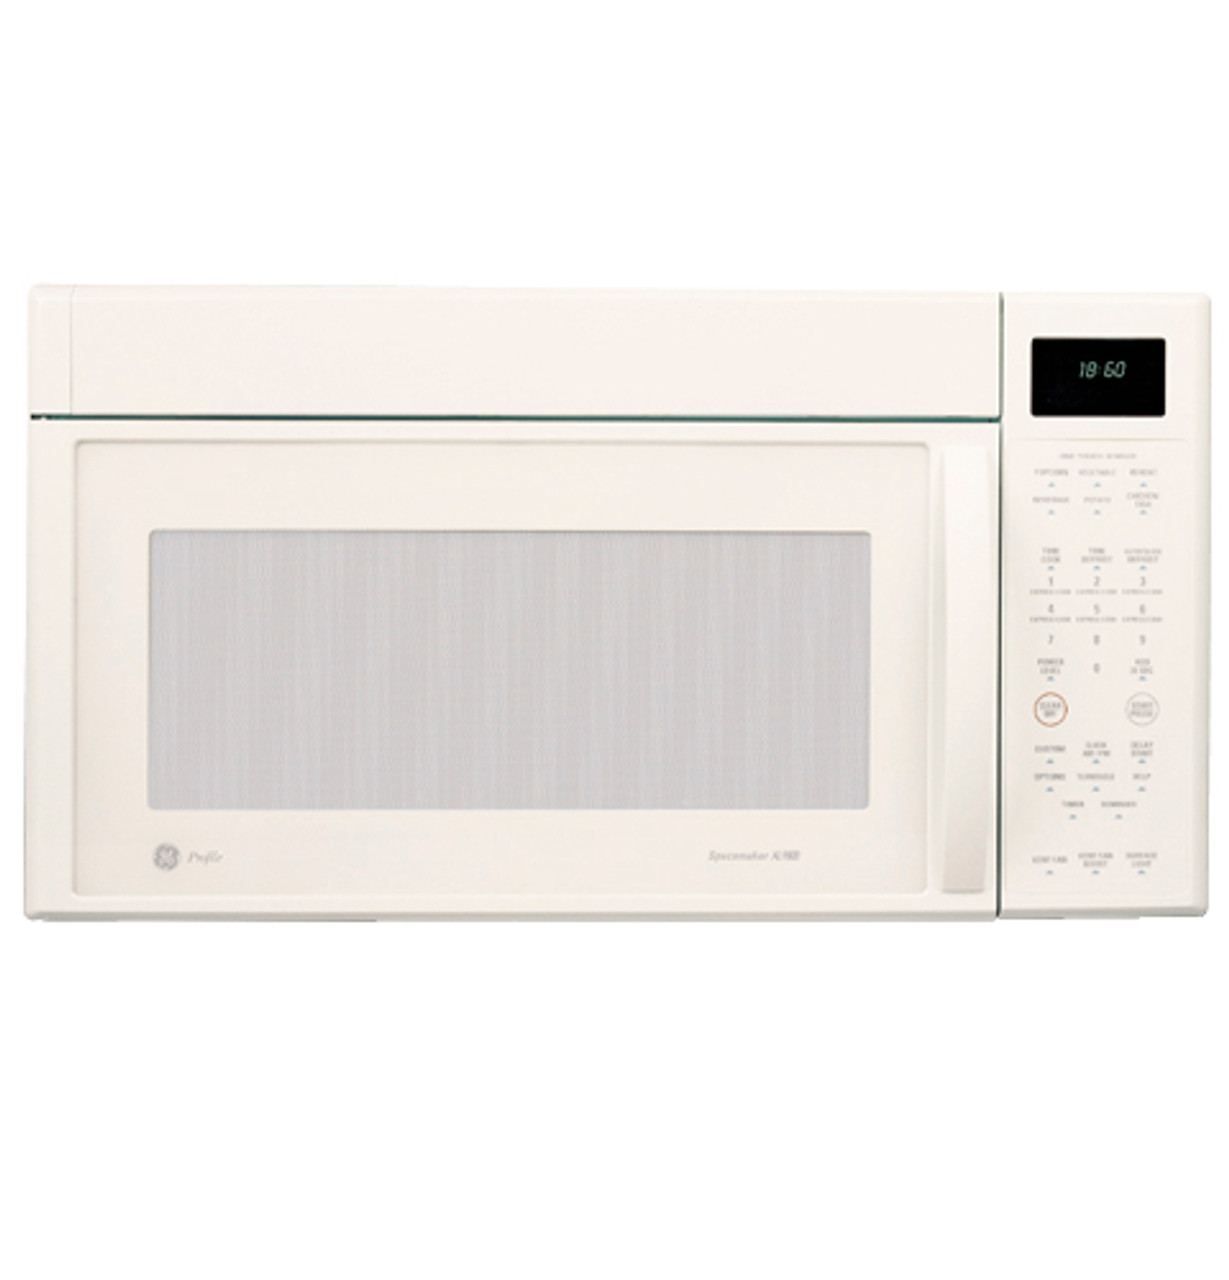 ge profile spacemaker xl1800 microwave oven with outside venting 1100 watts jvm1860cf